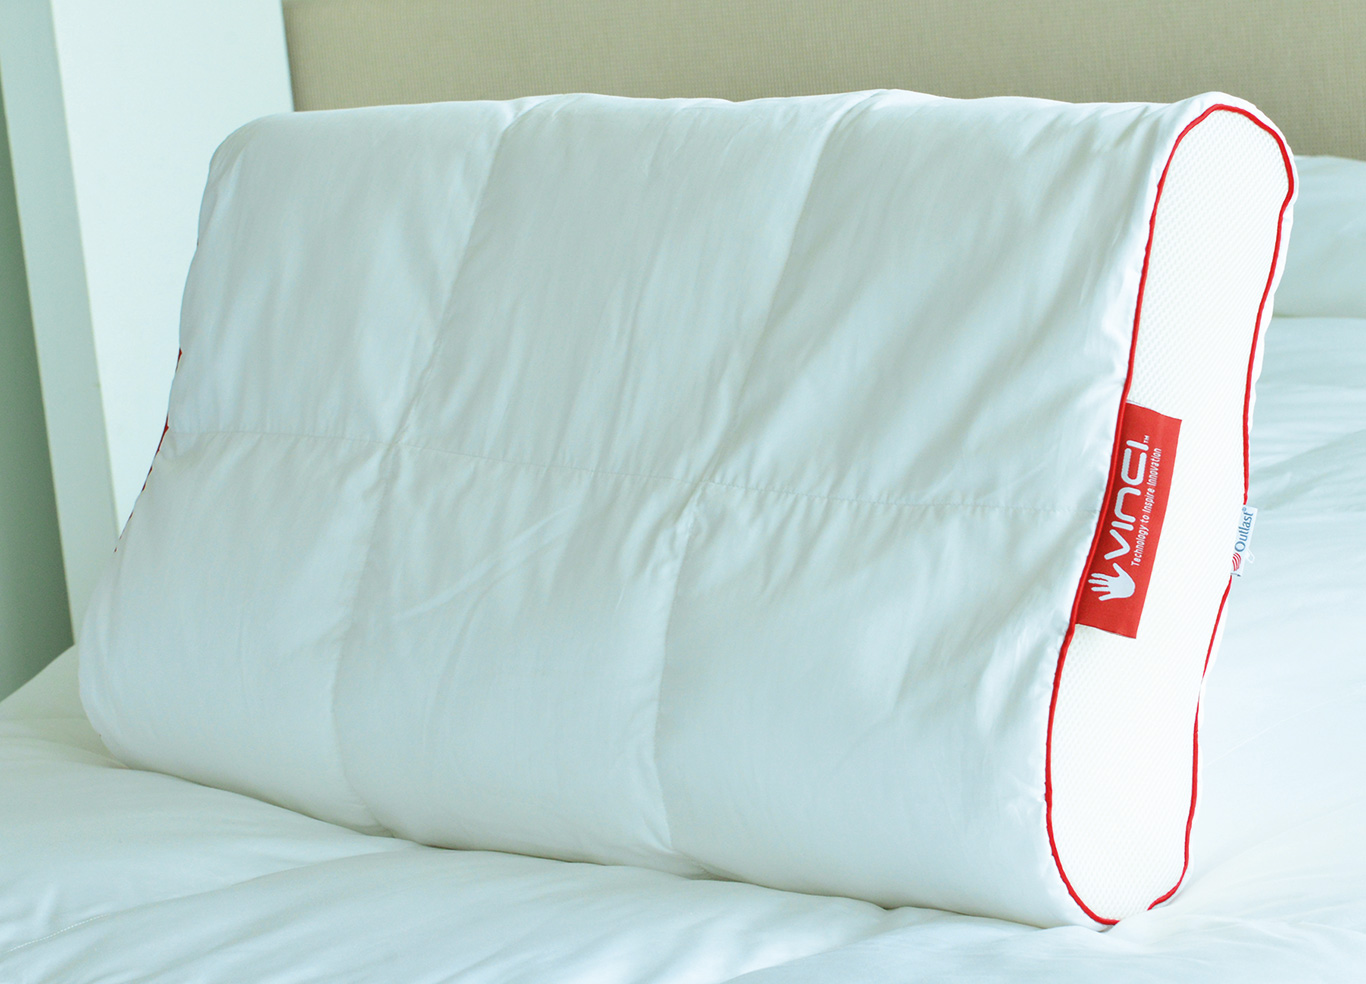 Neck pain relief bed in Bahrain